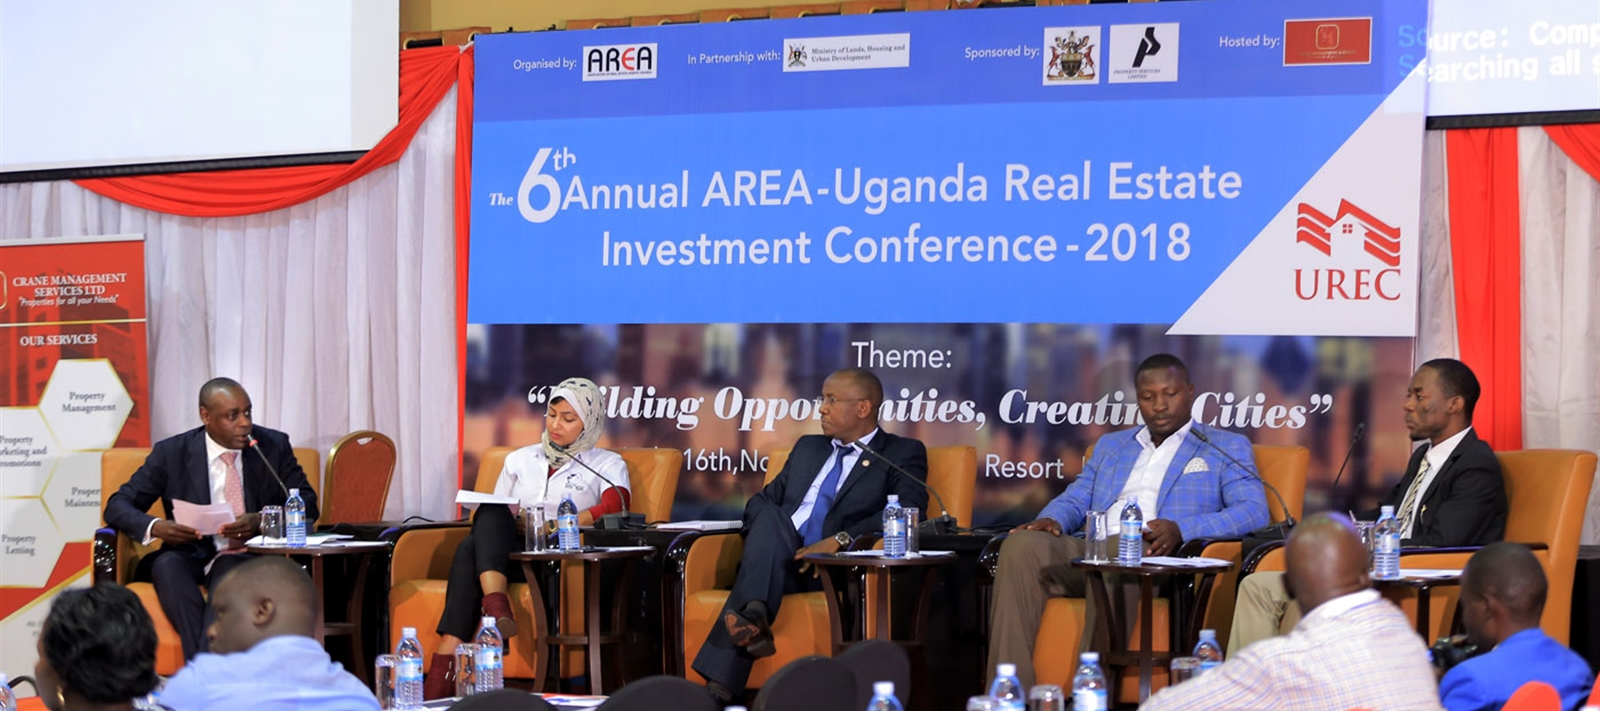 Panelists at AREA conference 2018